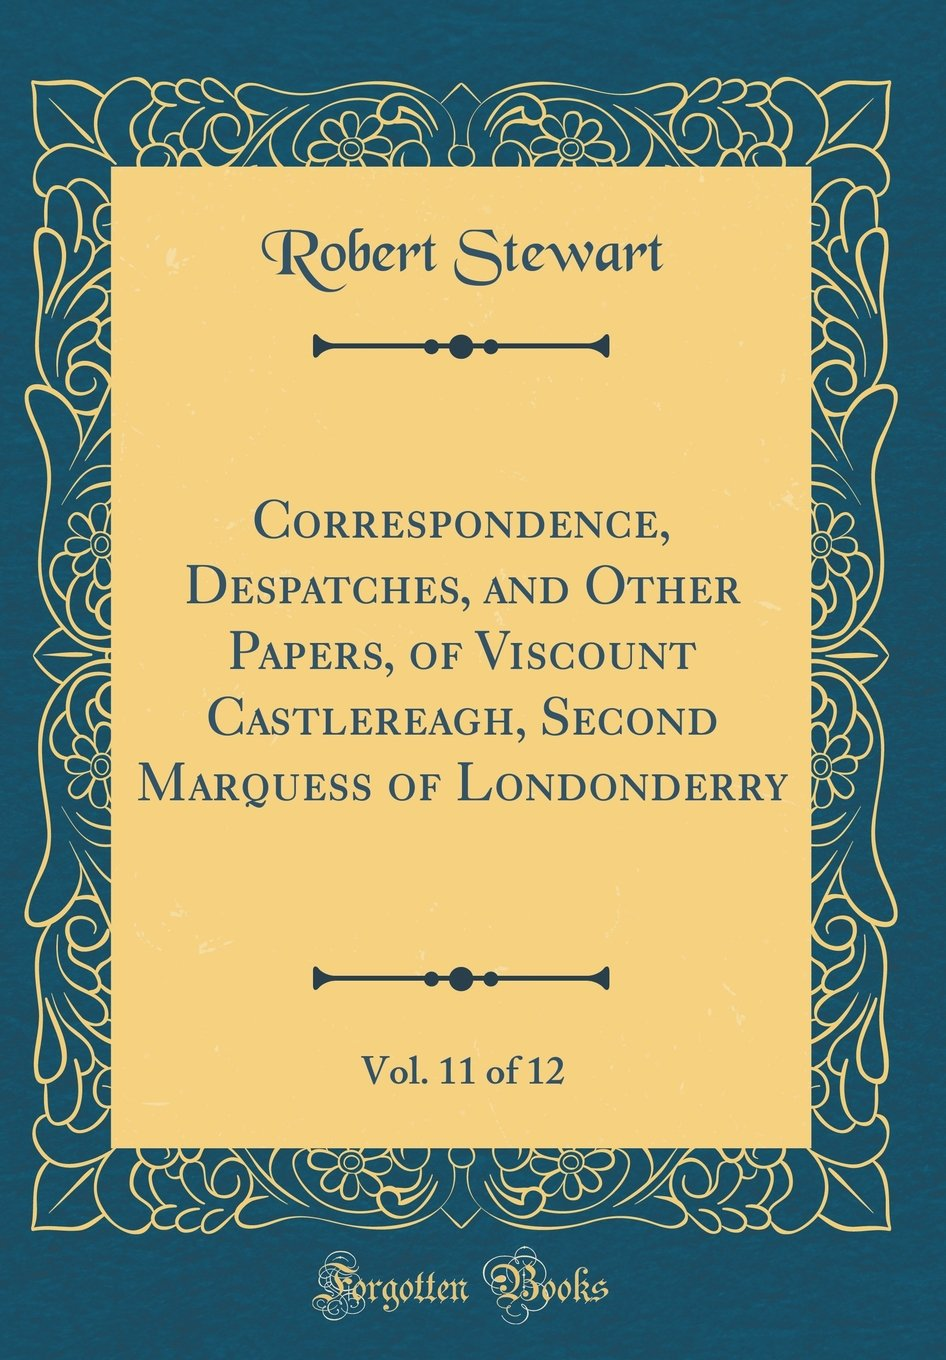 Download Correspondence, Despatches, and Other Papers, of Viscount Castlereagh, Second Marquess of Londonderry, Vol. 11 of 12 (Classic Reprint) PDF